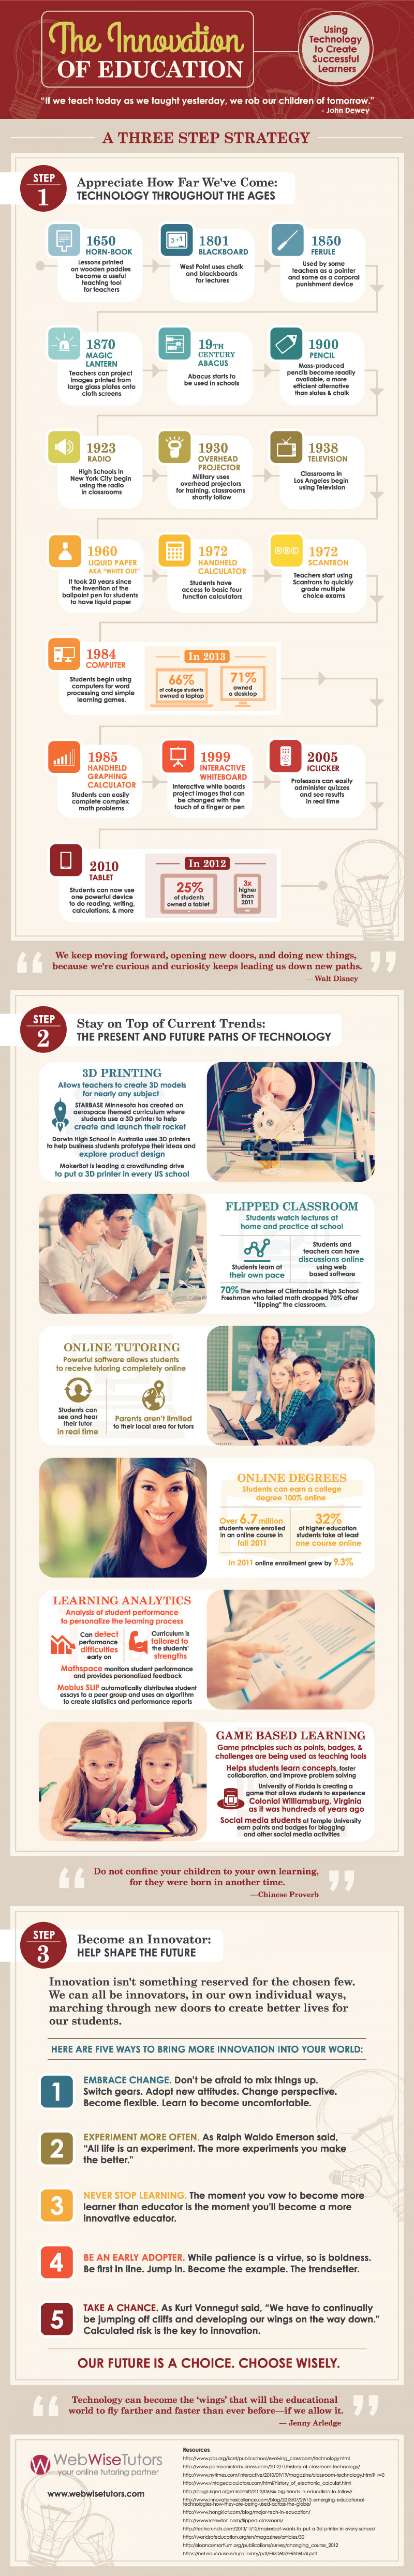 The Innovation of Education - Using Technology to Create Successful Learners Infographic